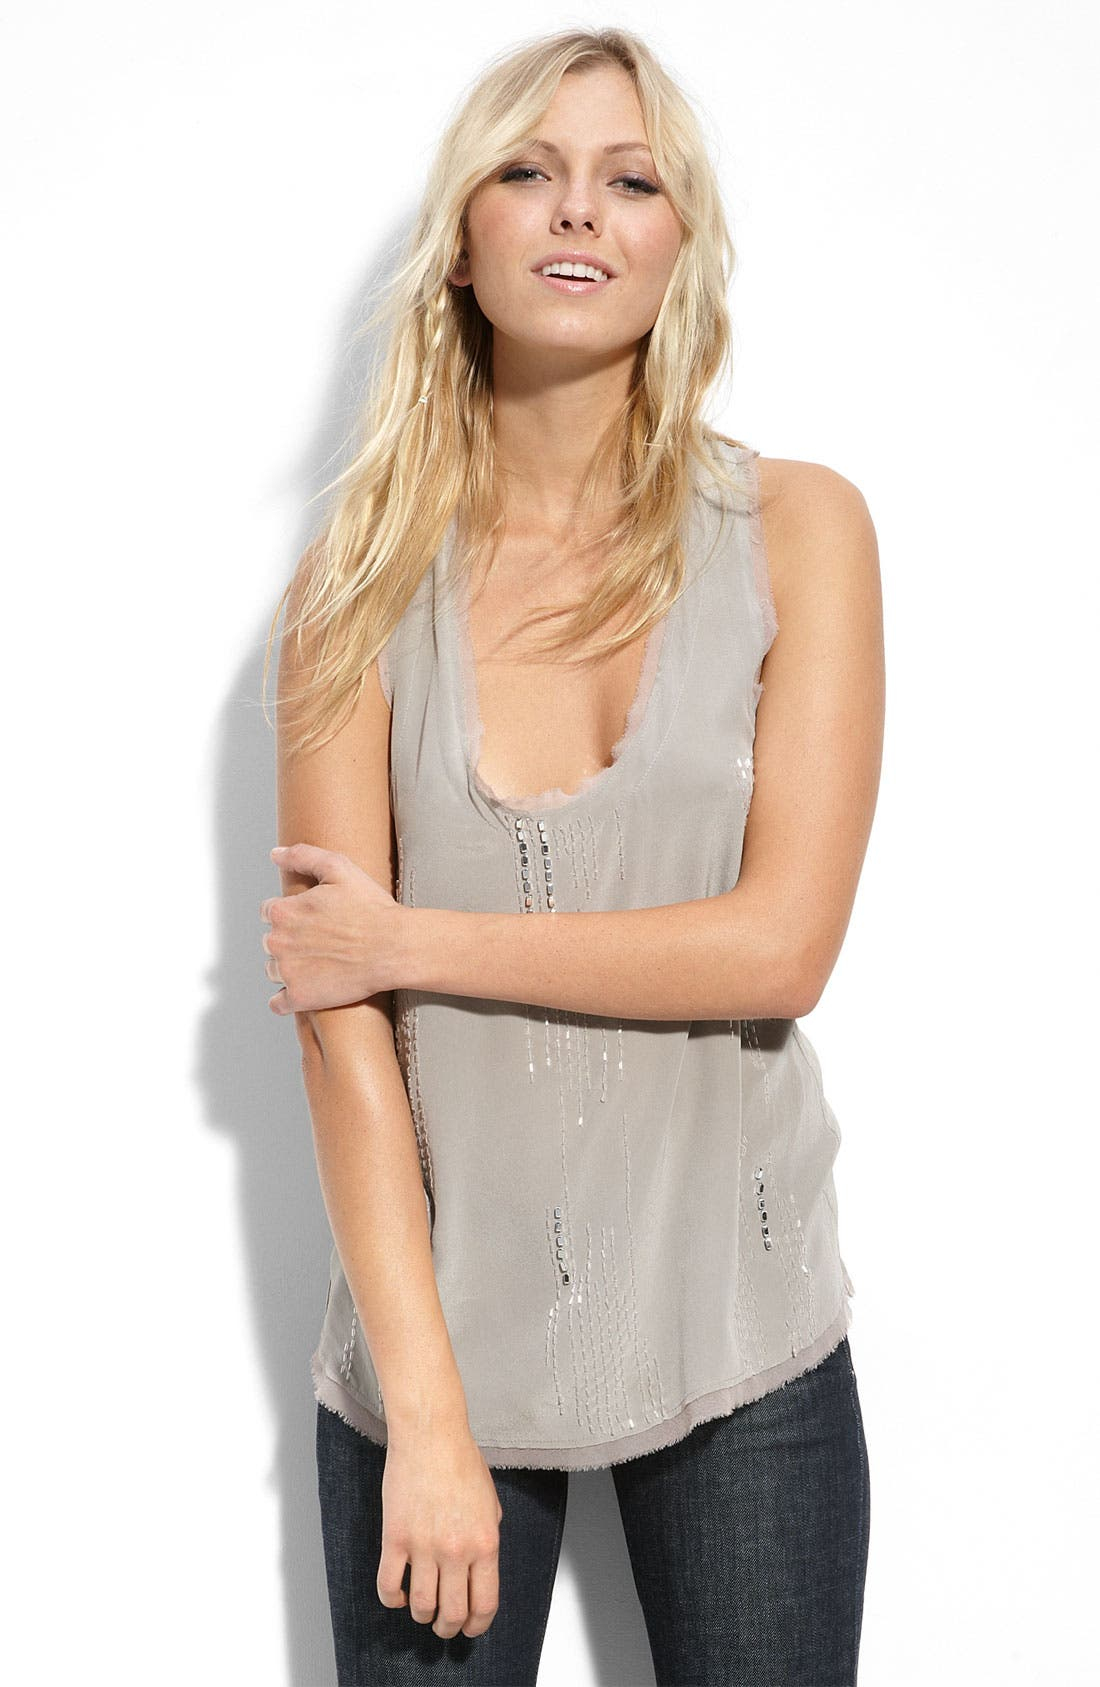 Pure Sugar Tank & Kensie Faux Fur Vest with Citizens of Humanity Stretch Jeans,                             Main thumbnail 1, color,                             055